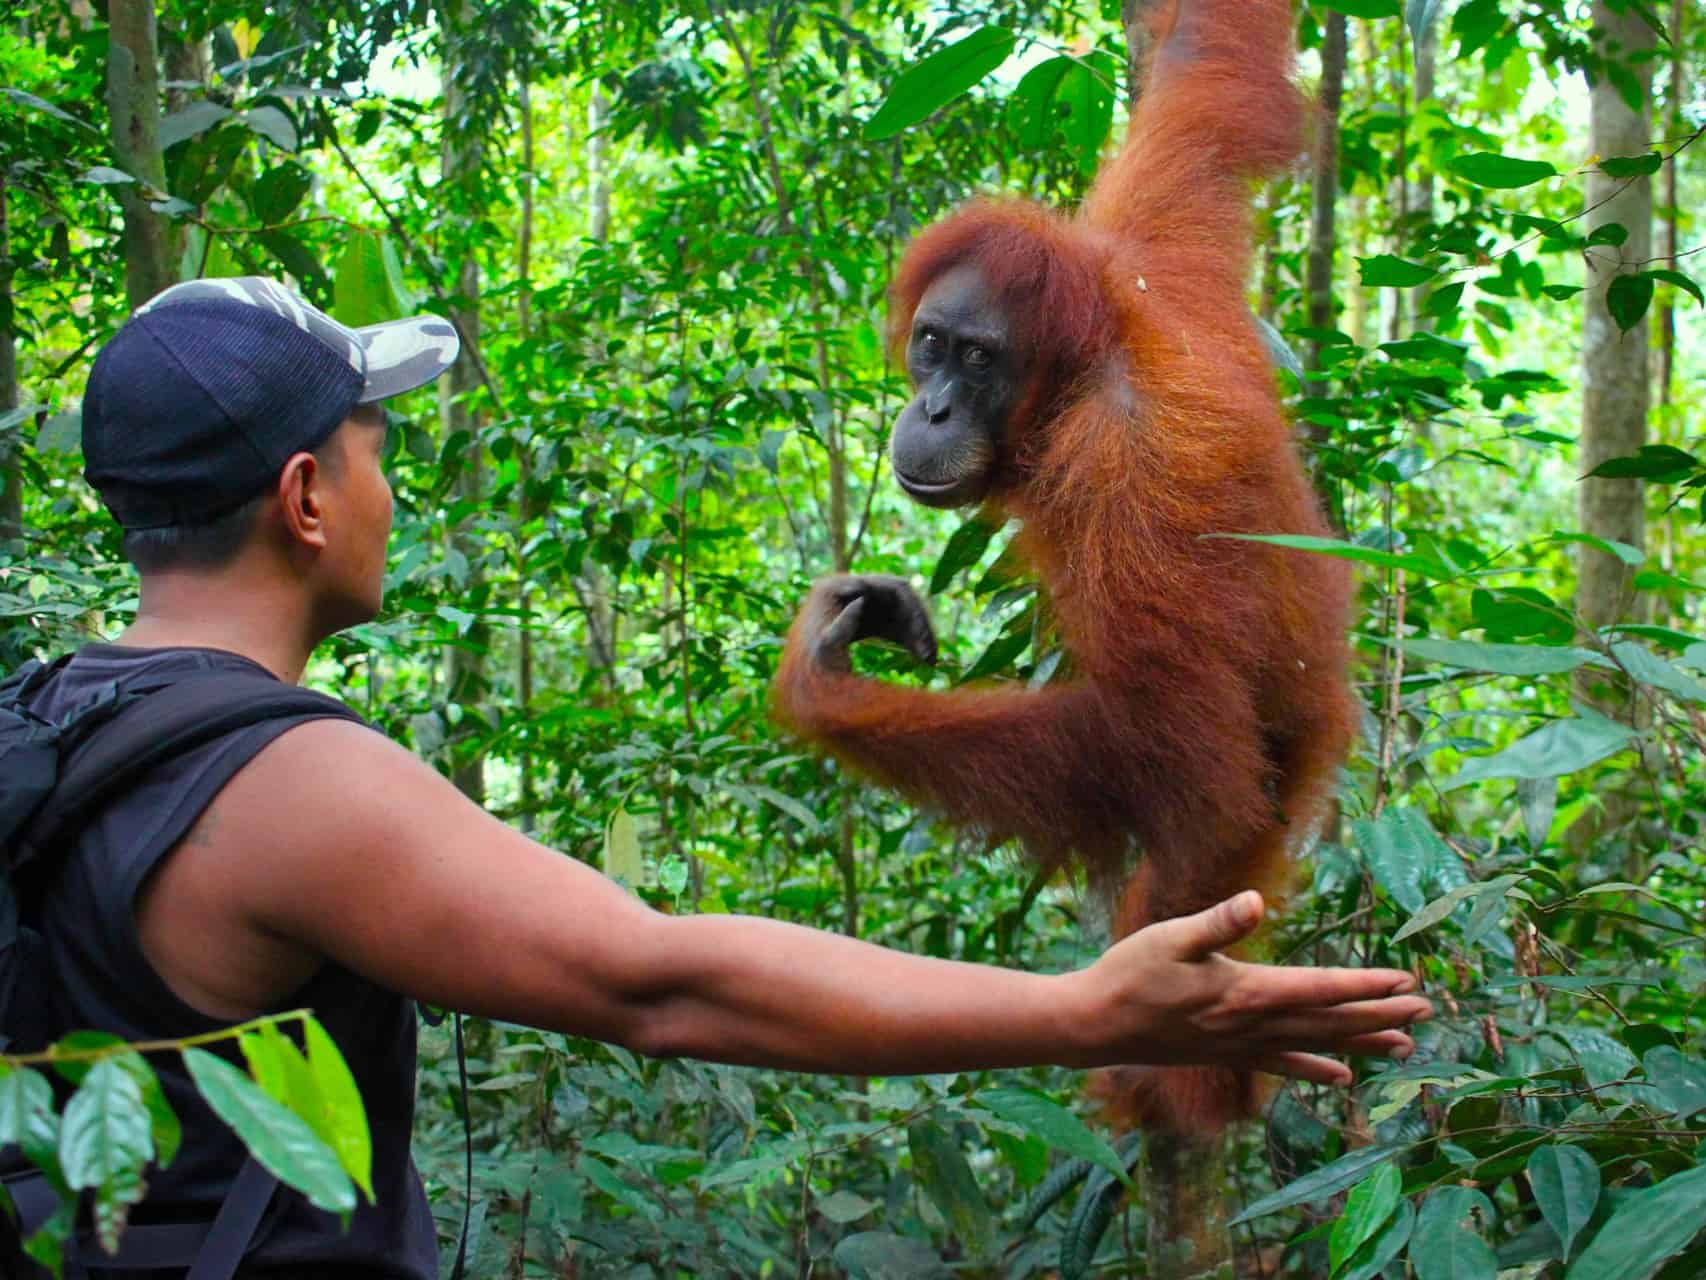 BUKIT LAWANG JUNGLE TREKKING - 1-DAY TREK - JUNGLE VIEW HIKE - SUMATRA ECOTRAVEL